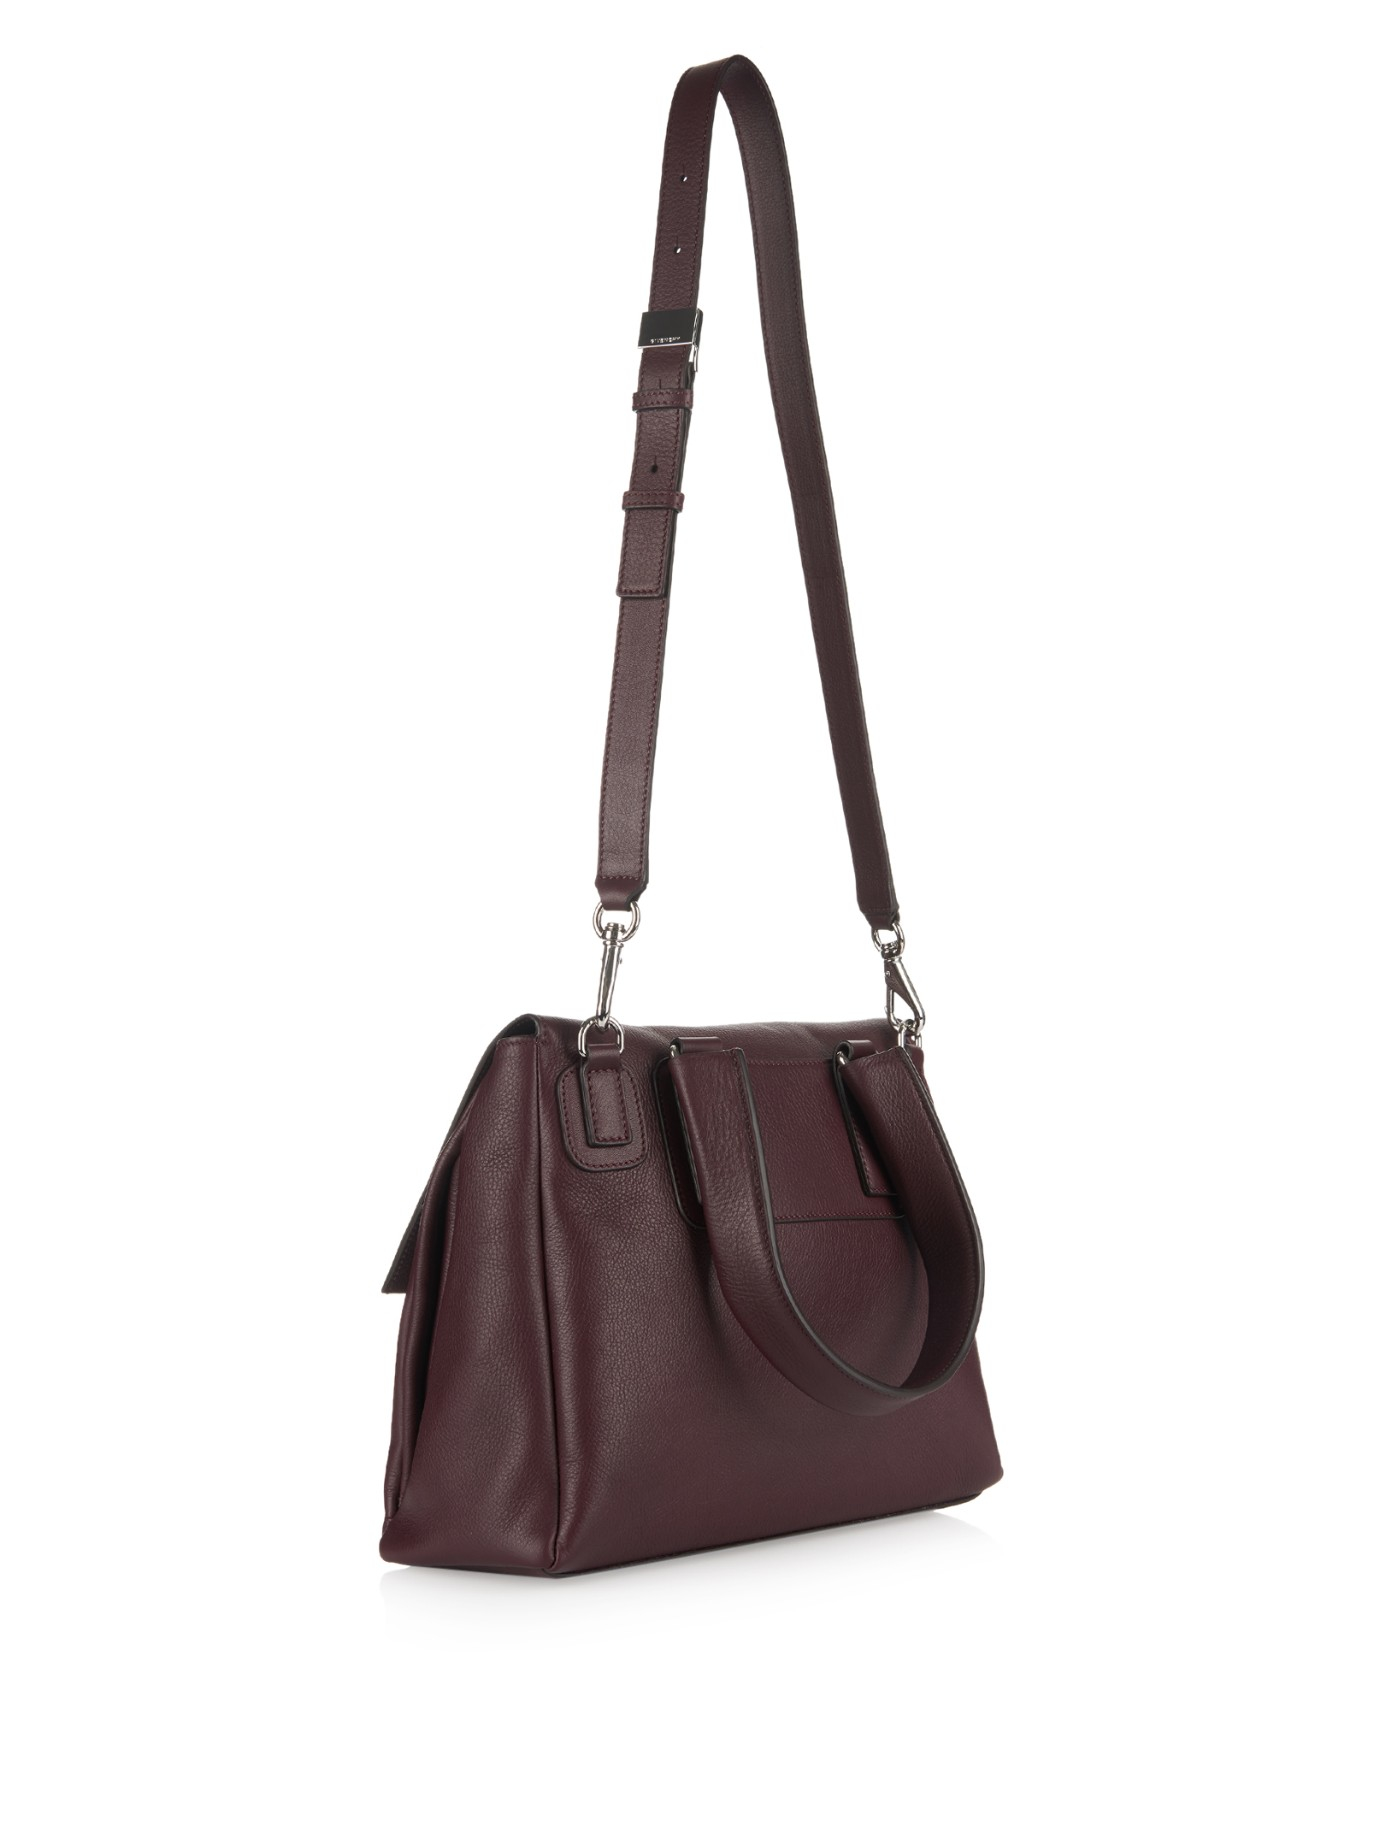 eefeac22f00e Givenchy Pandora Pure Small Leather Bag in Purple (BURGUNDY)